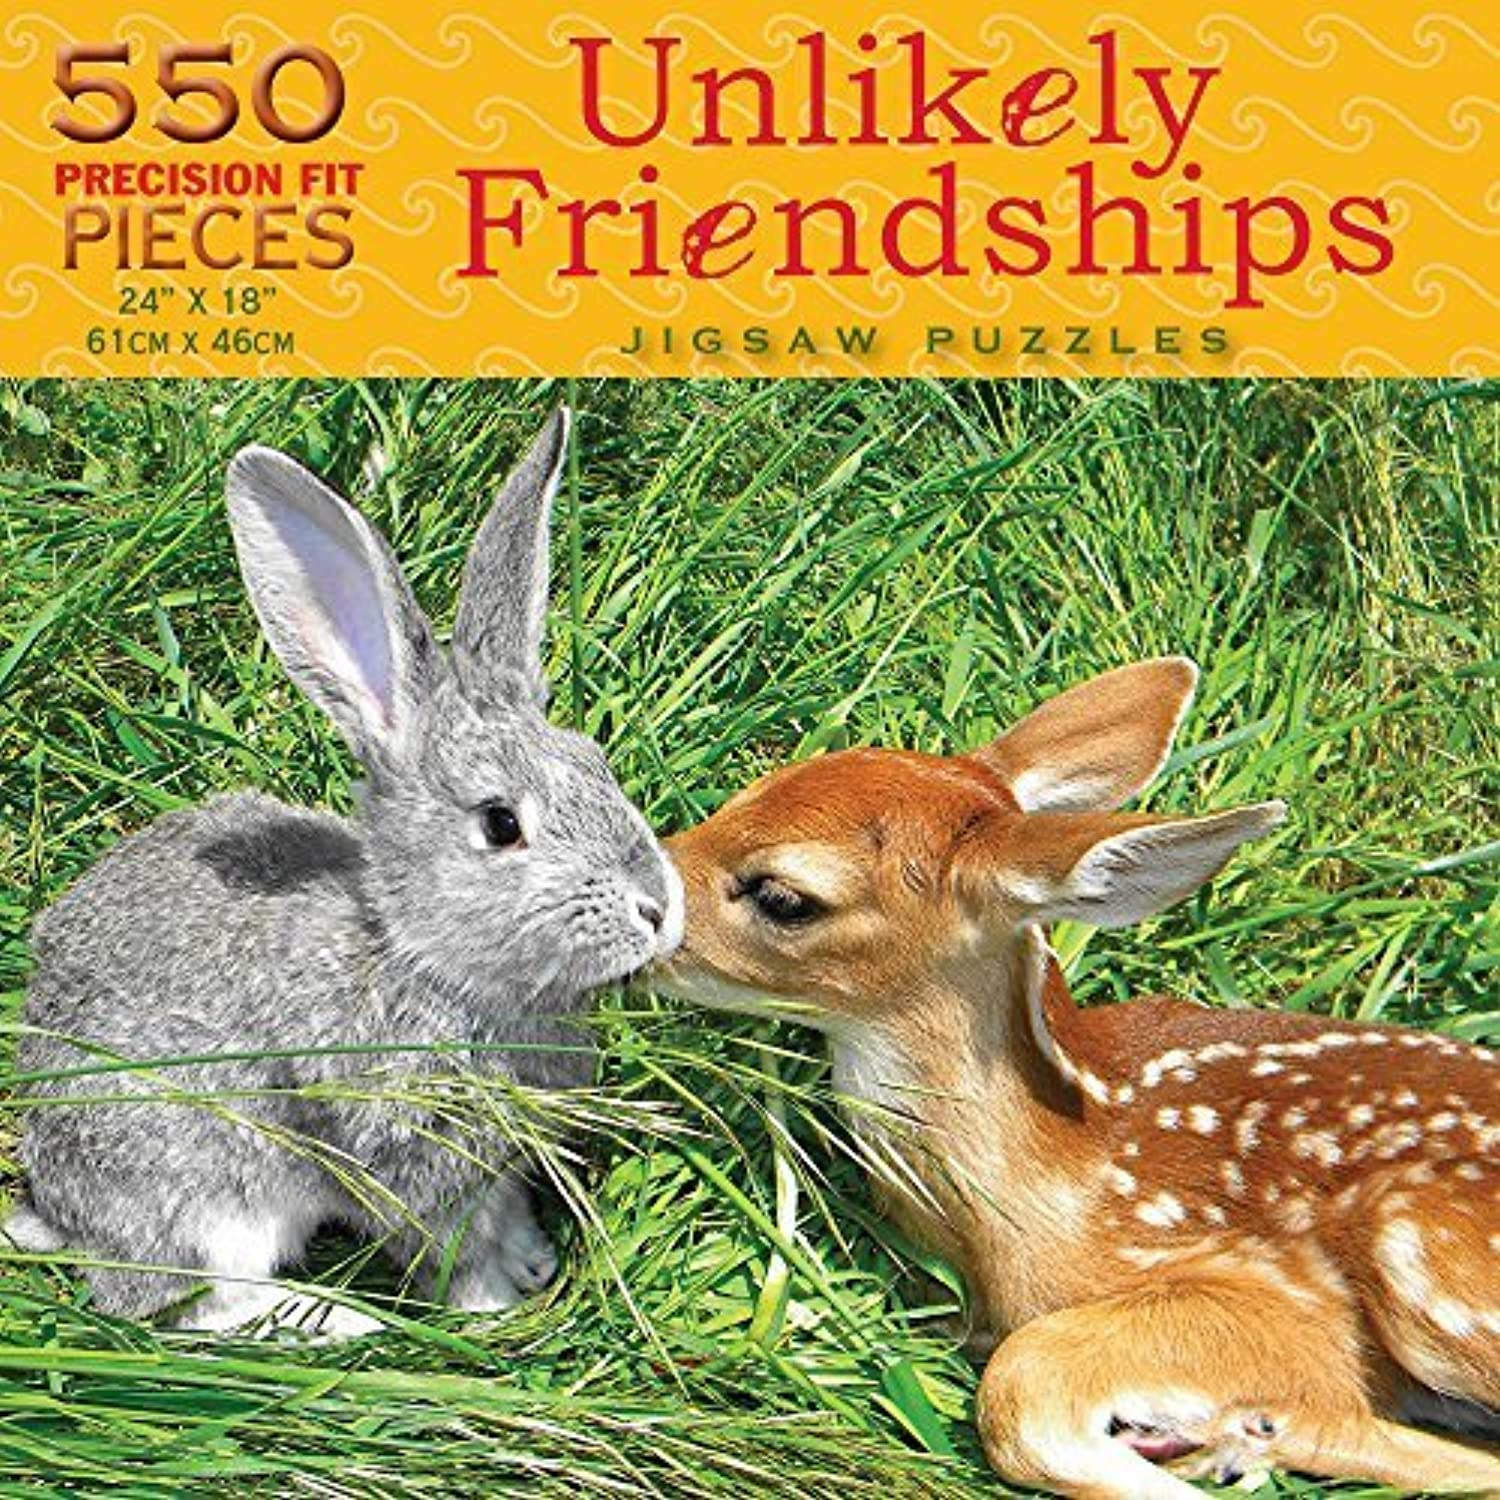 Luvit Puzzles Unlikely Friendships  Animal Attraction Jigsaw Puzzle (550 Piece) by Rejects from Studios